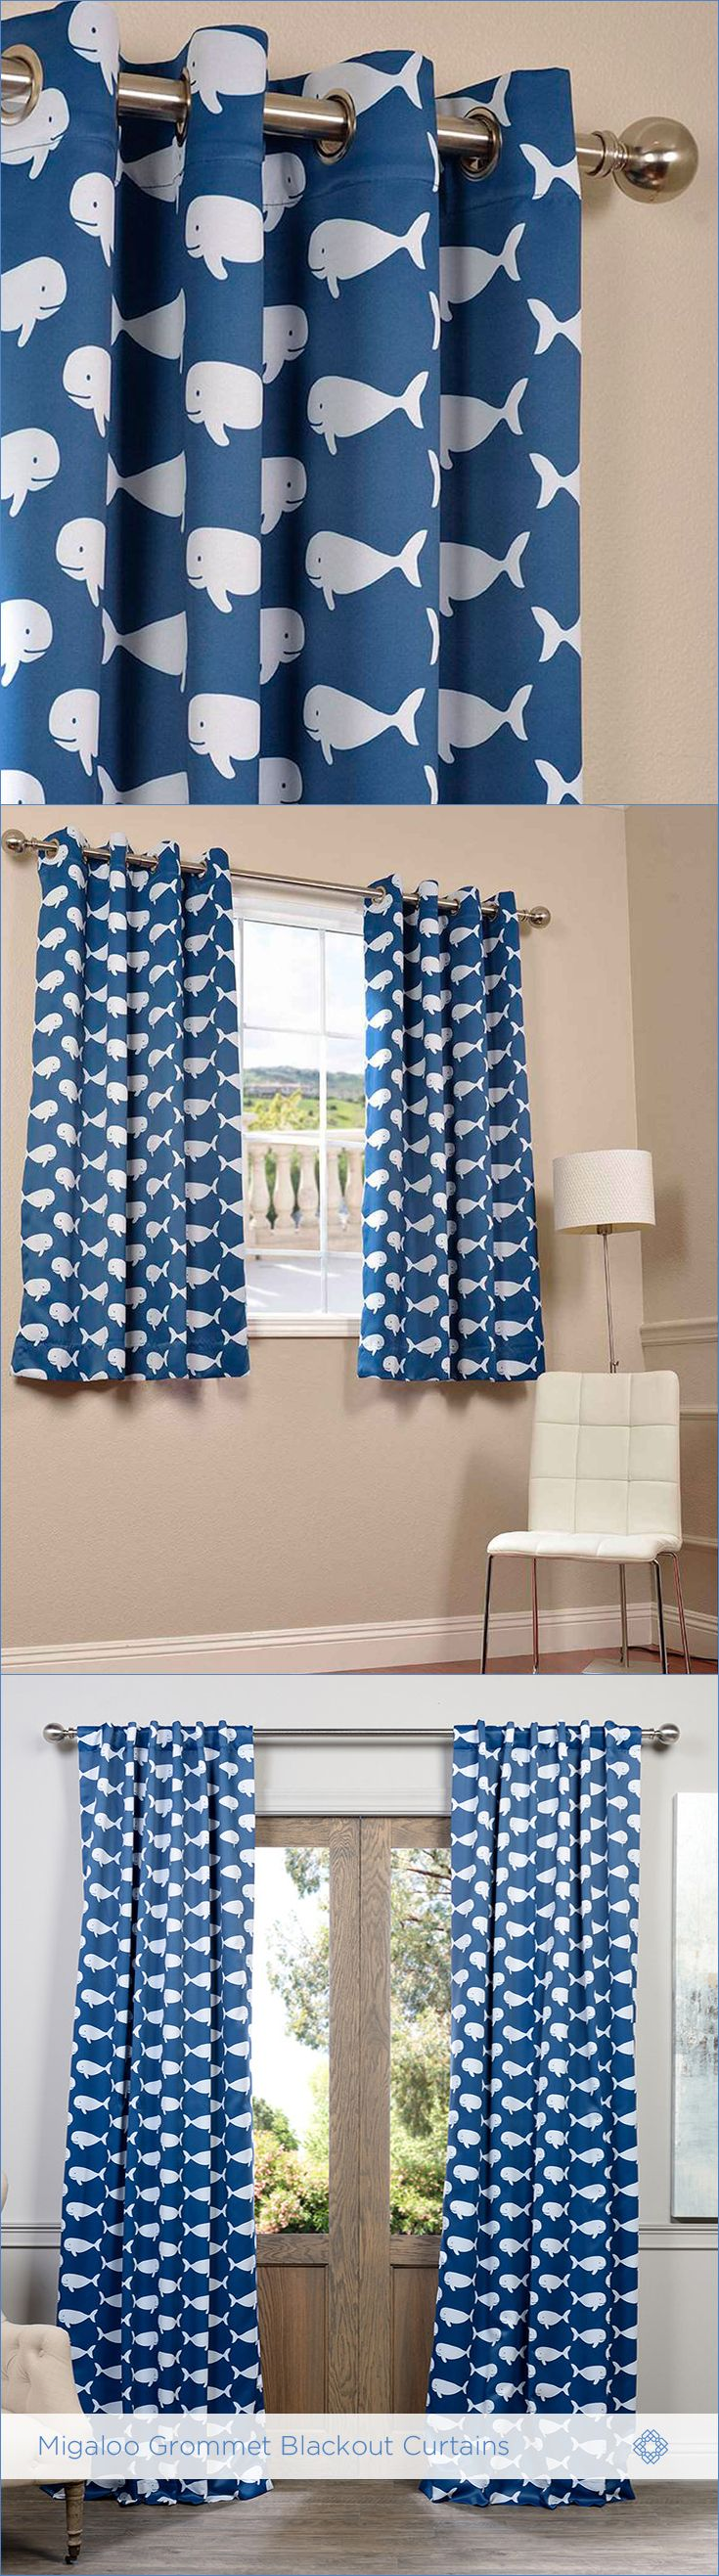 You Will Instantly Fall In Love With Our Blackout Curtains And Drapes The Fabric Is